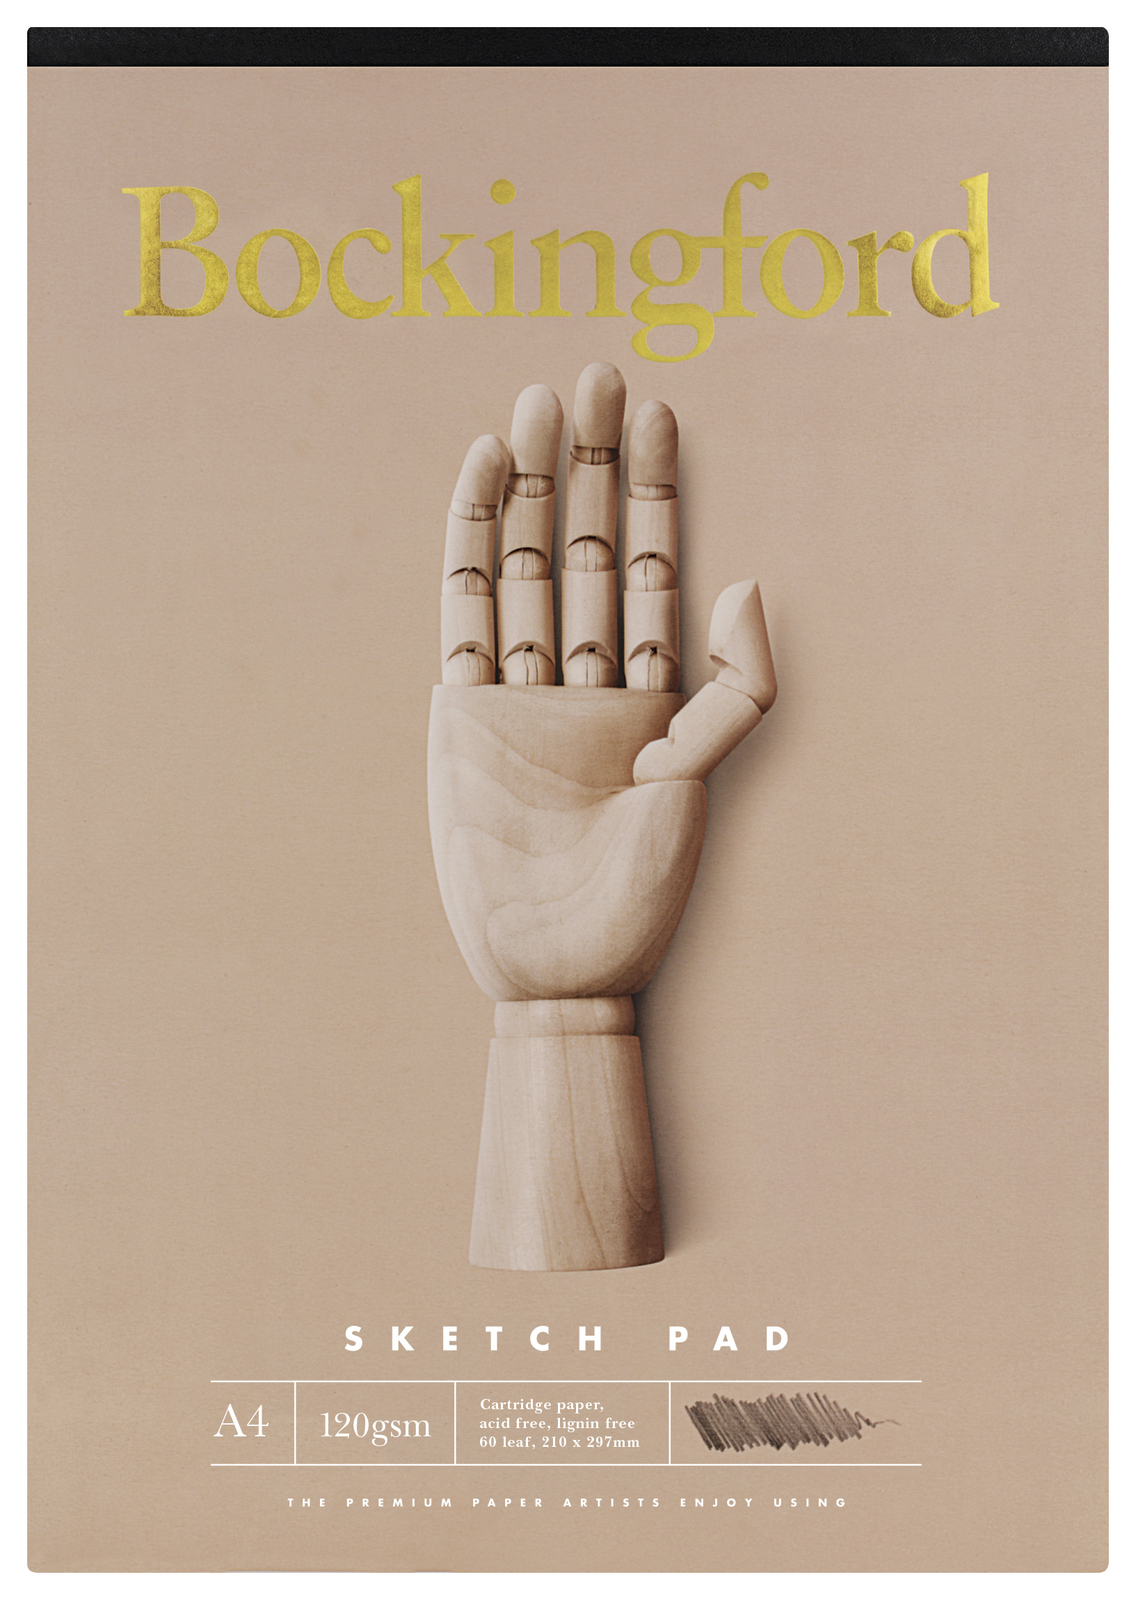 Bockingford A4 B21 60lf 120gsm Sketch Pad image